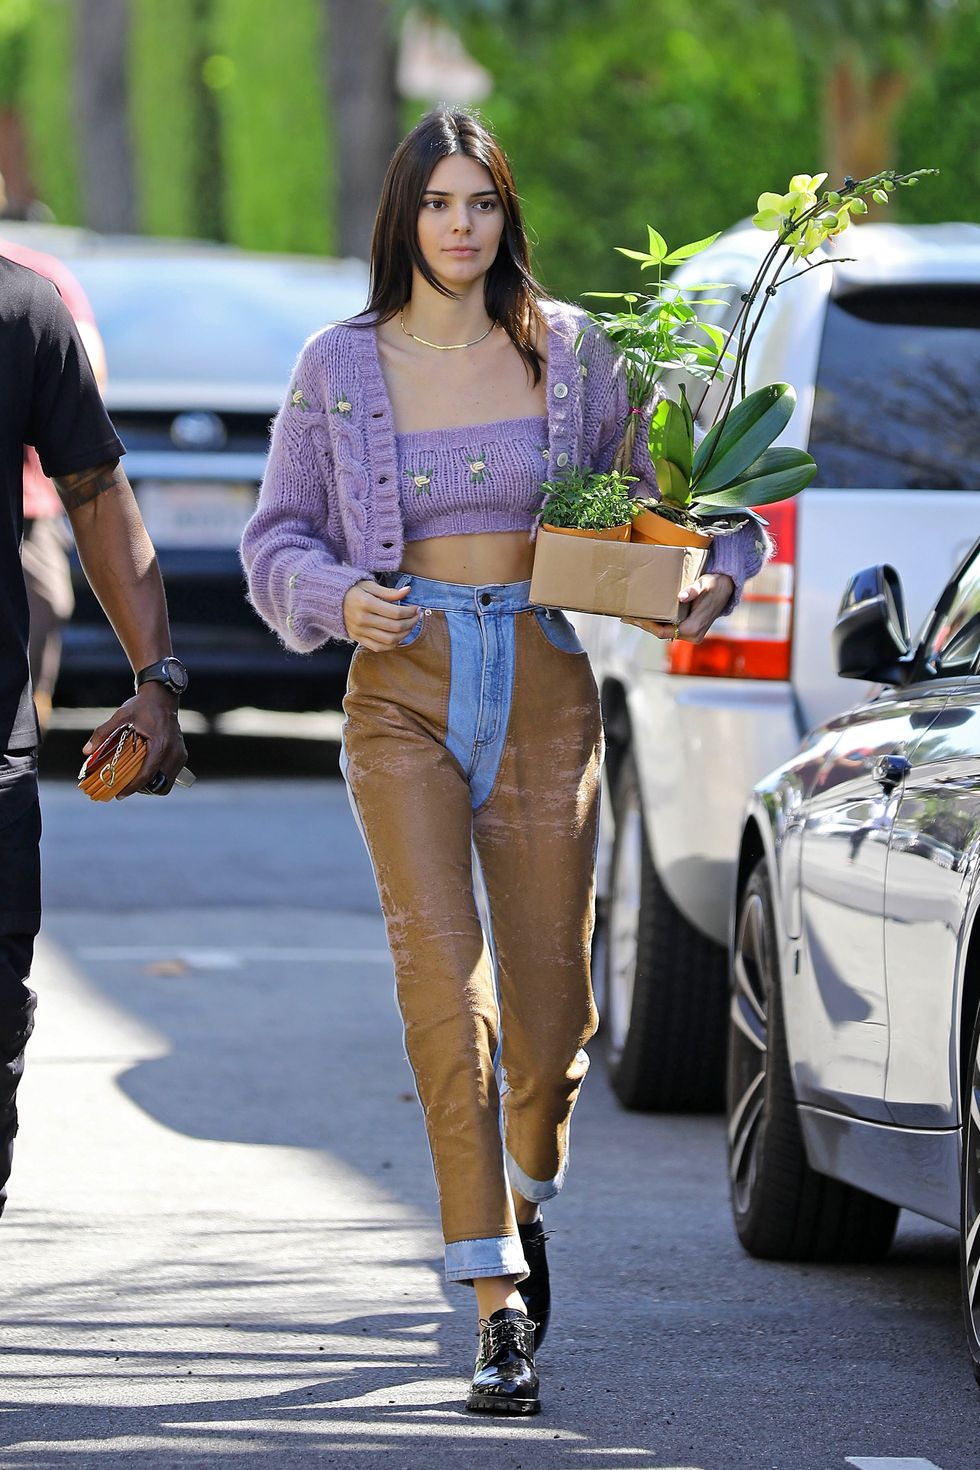 April 6, 2019 Kendall's purple knit set was perfect for a nice spring day. She wore it with a pair of unique jeans that came with patches of brown on the front.